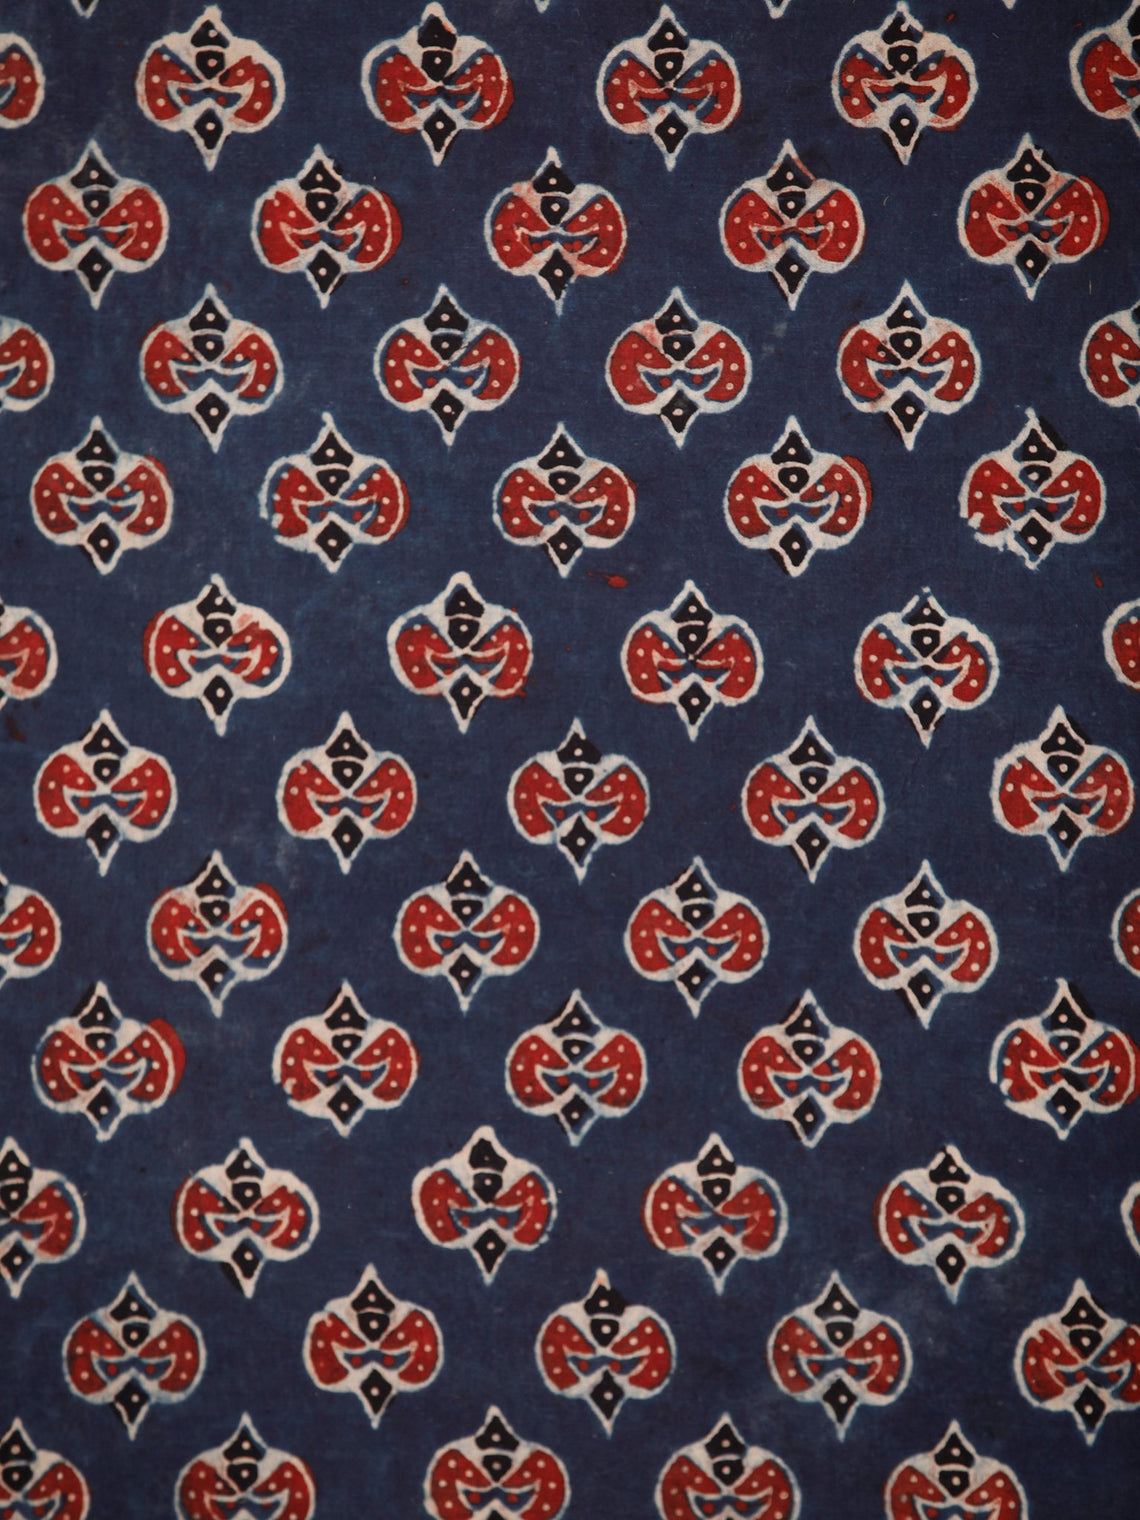 Indigo Red Ivory Black Ajrakh Block Printed Cotton Fabric Per Meter - F003F1760